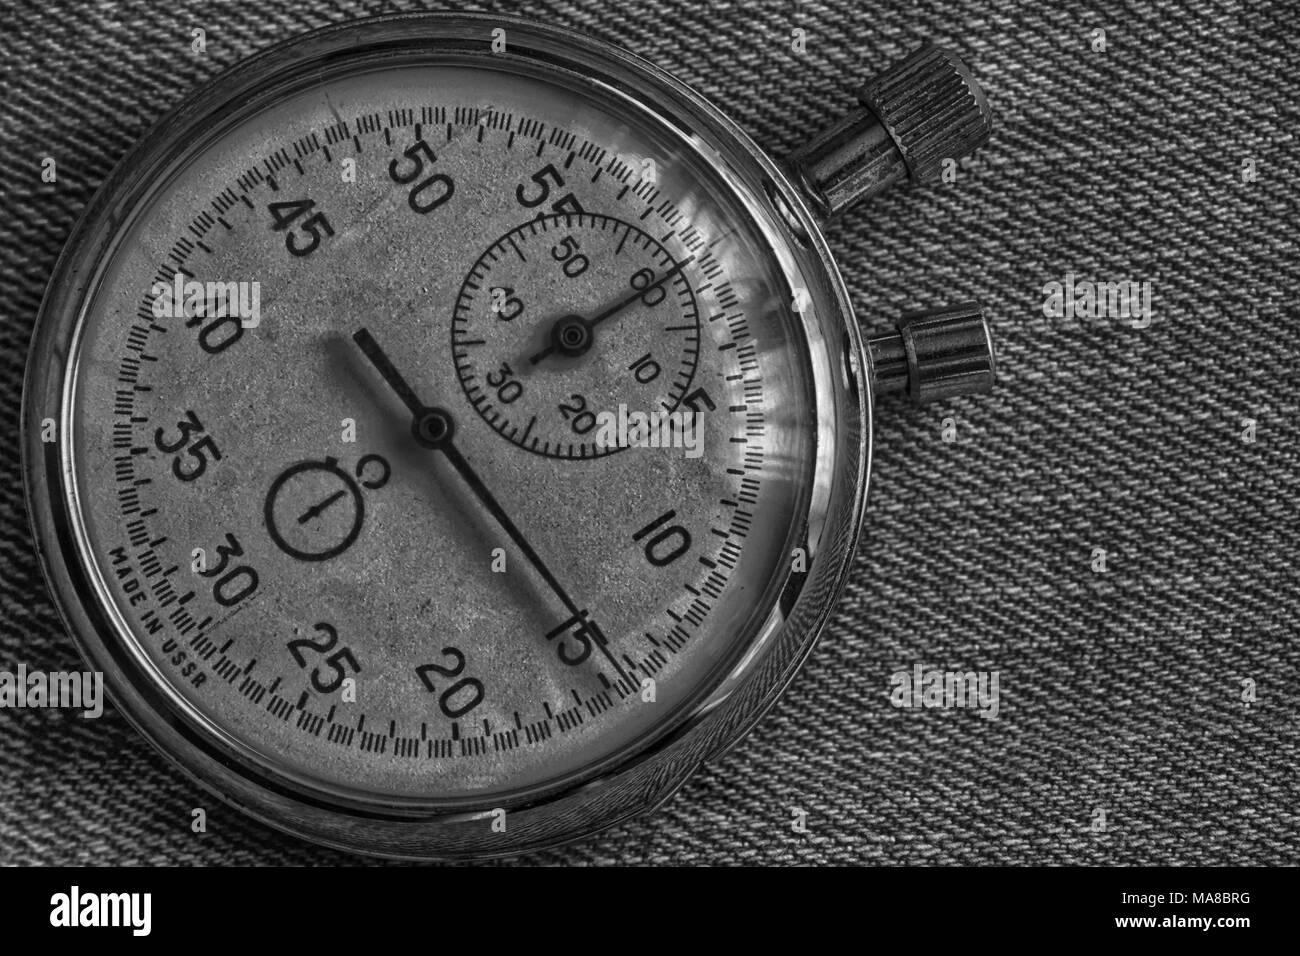 Stopwatch, on worn denim background, value measure time, old